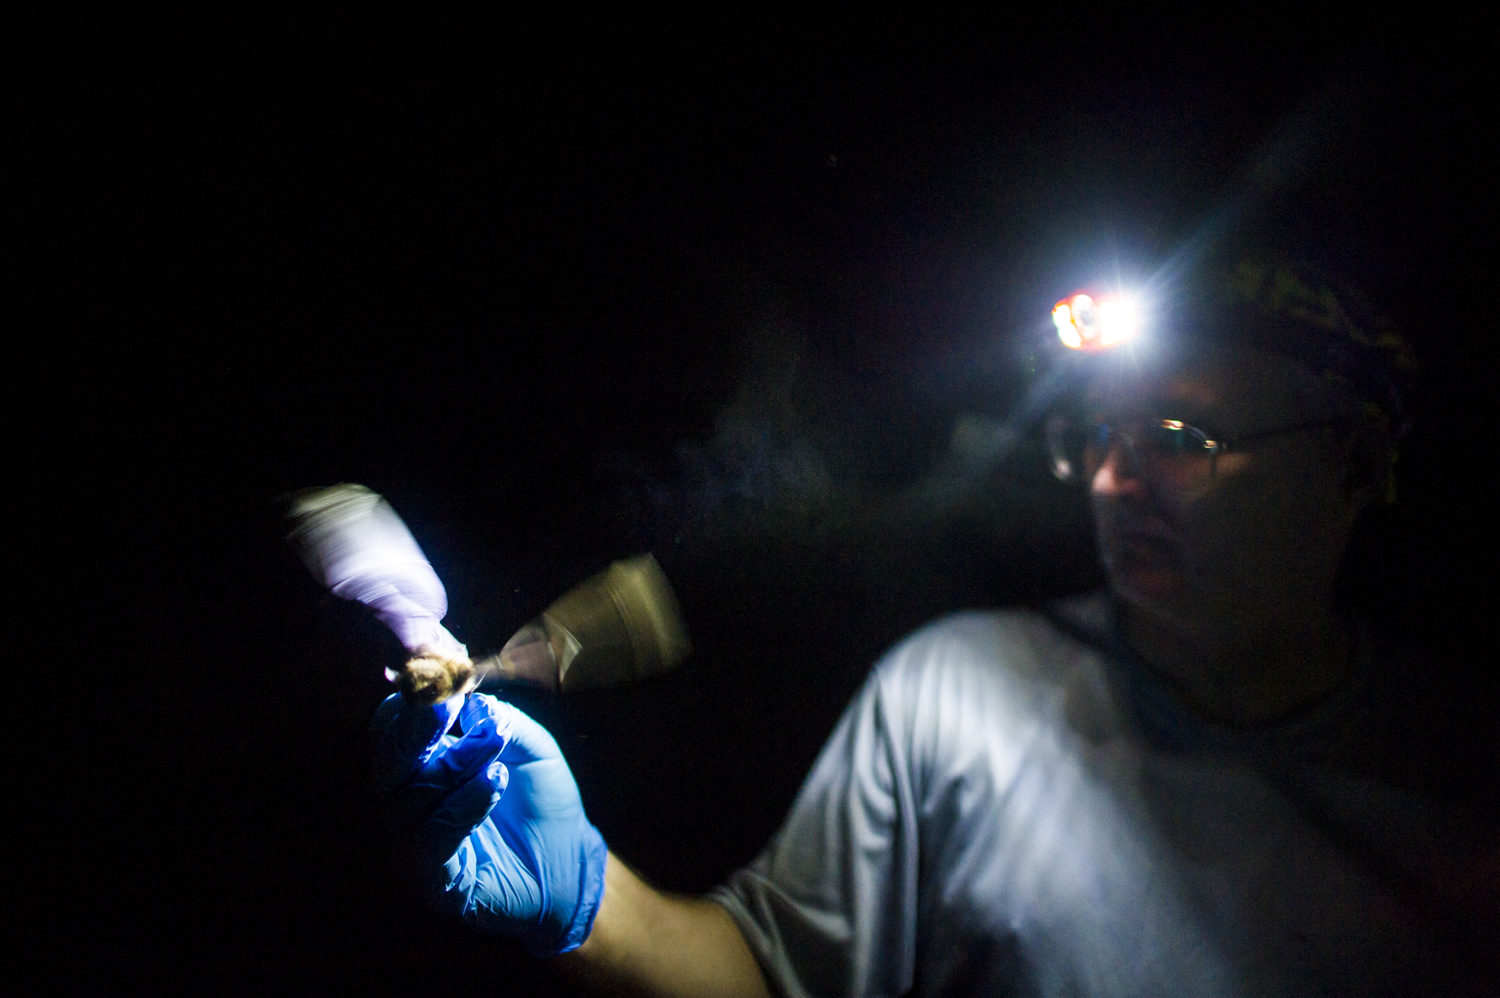 A bat attempts to take flight as a researcher observes its wing damage, a symptom of White-Nose Syndrome.